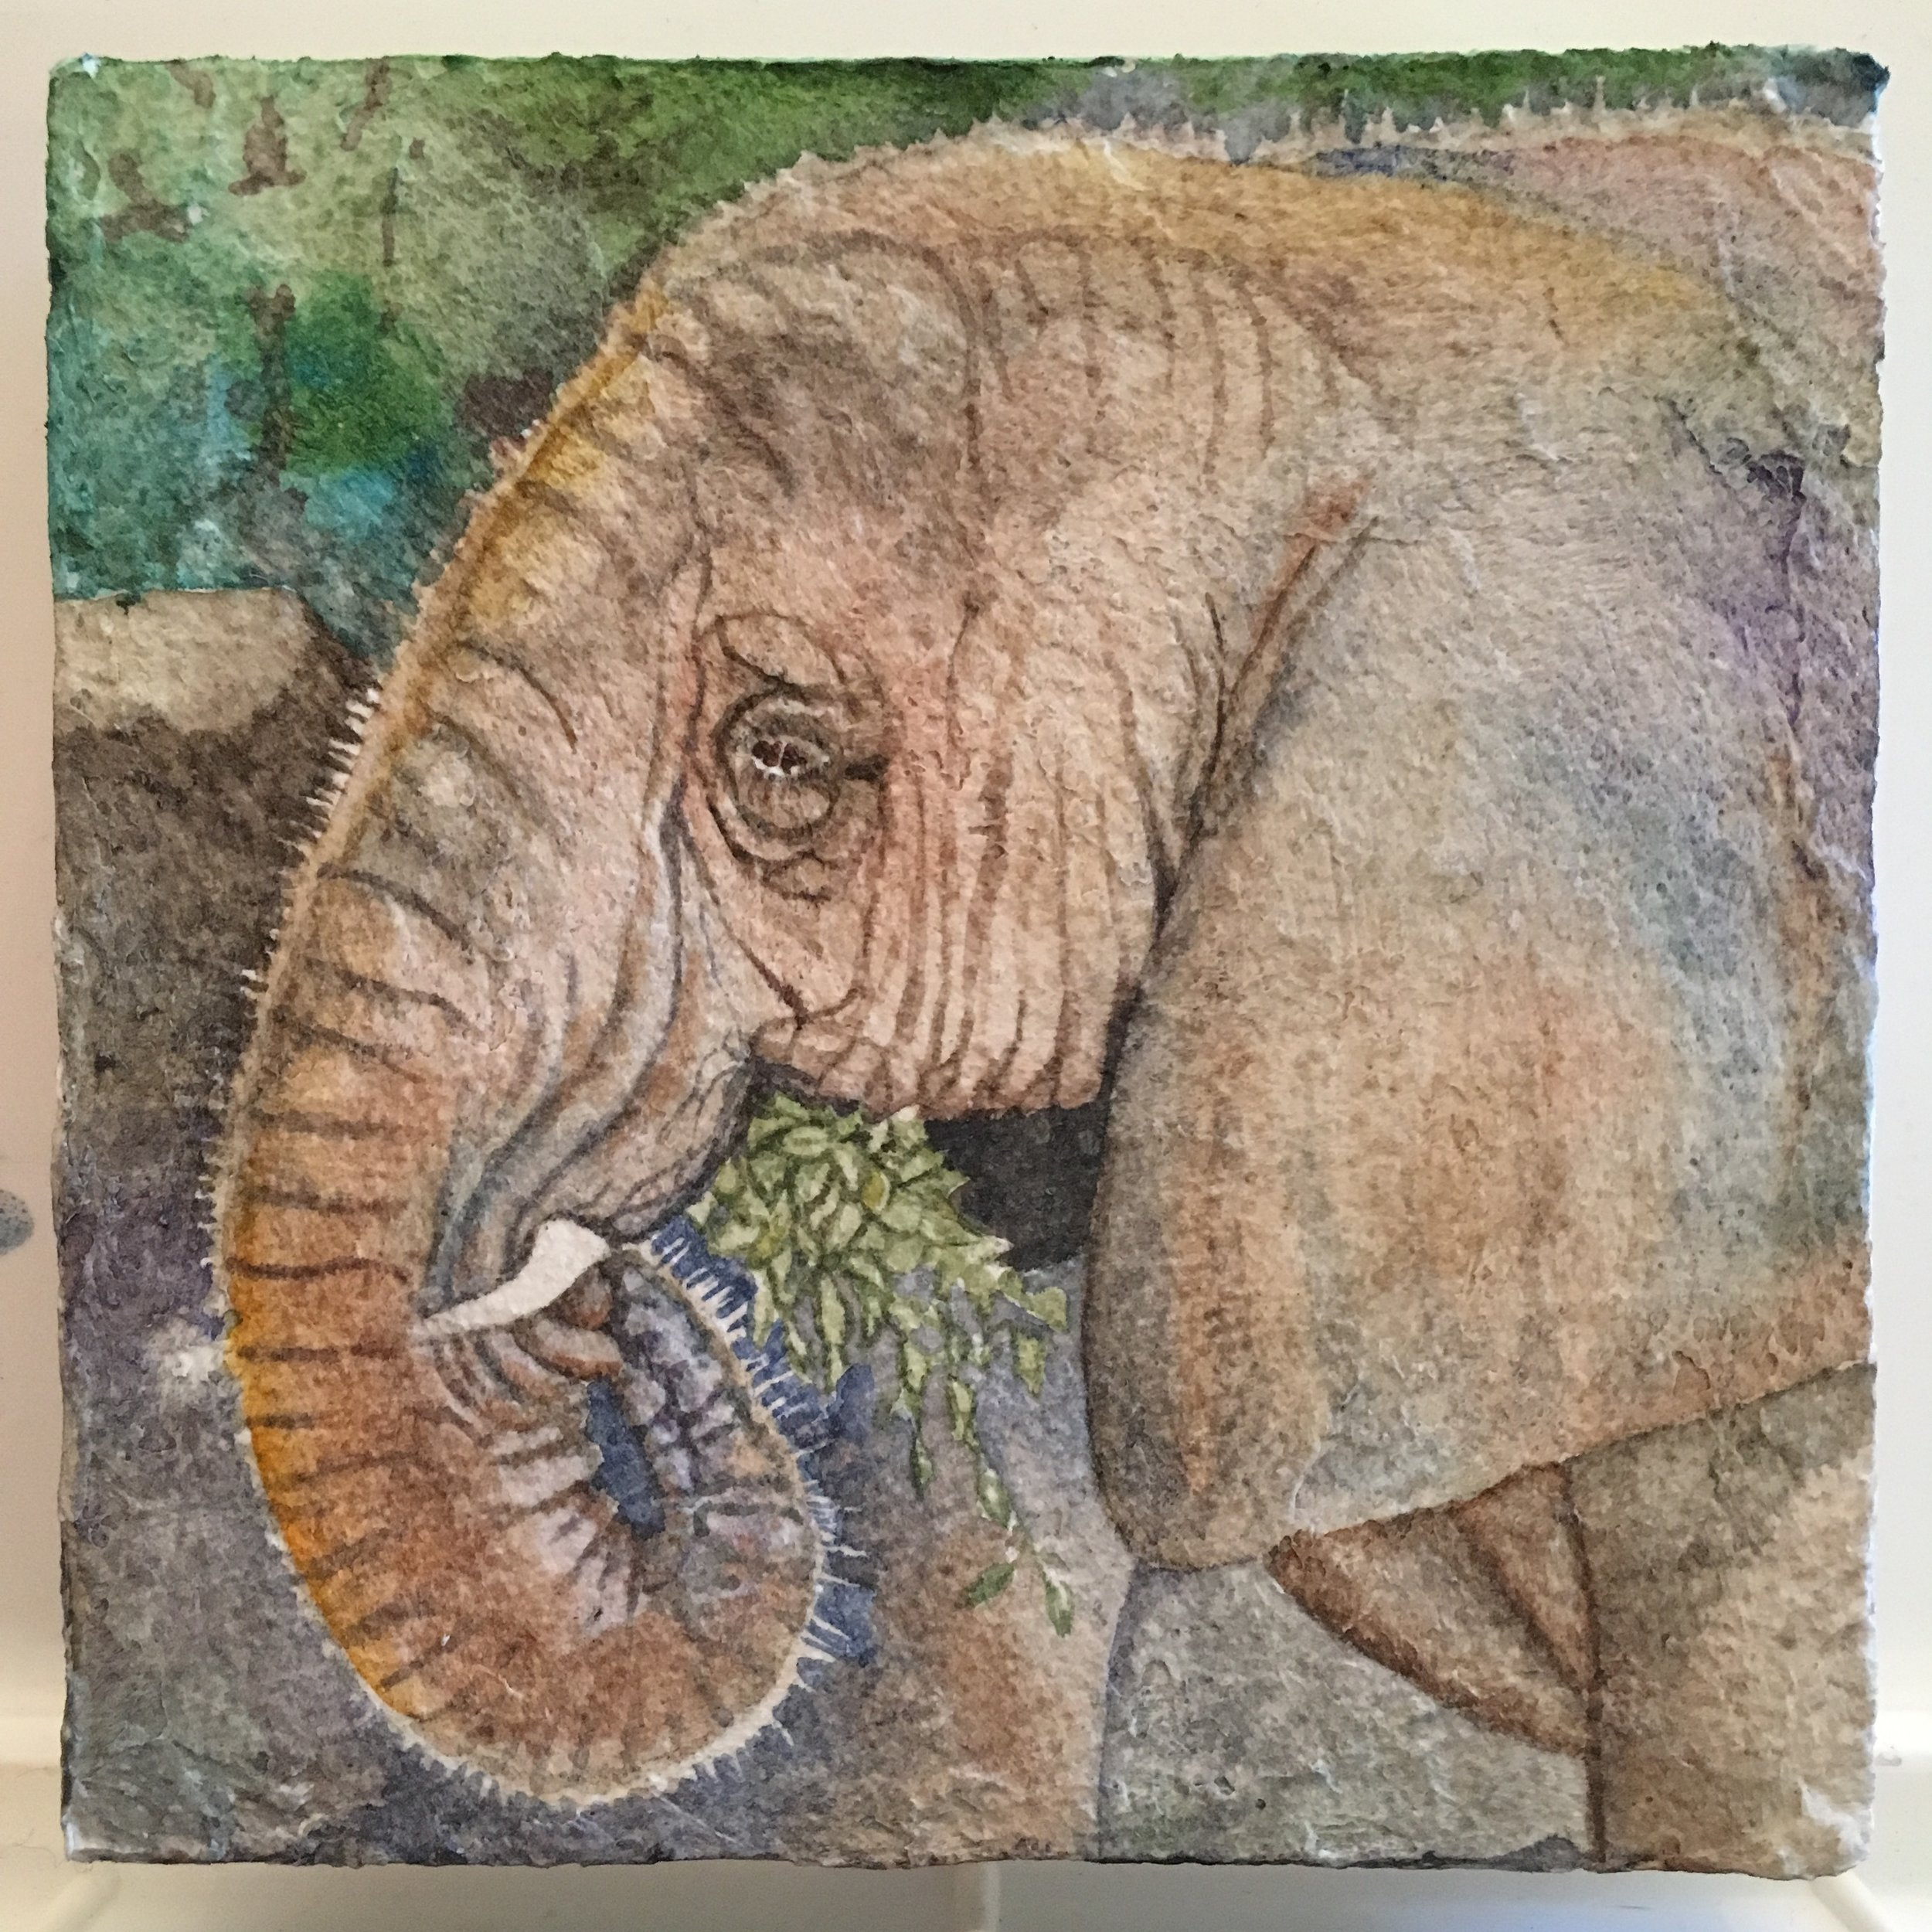 The Fiber Paste texture is fabulous for this wrinkly pachyderm!